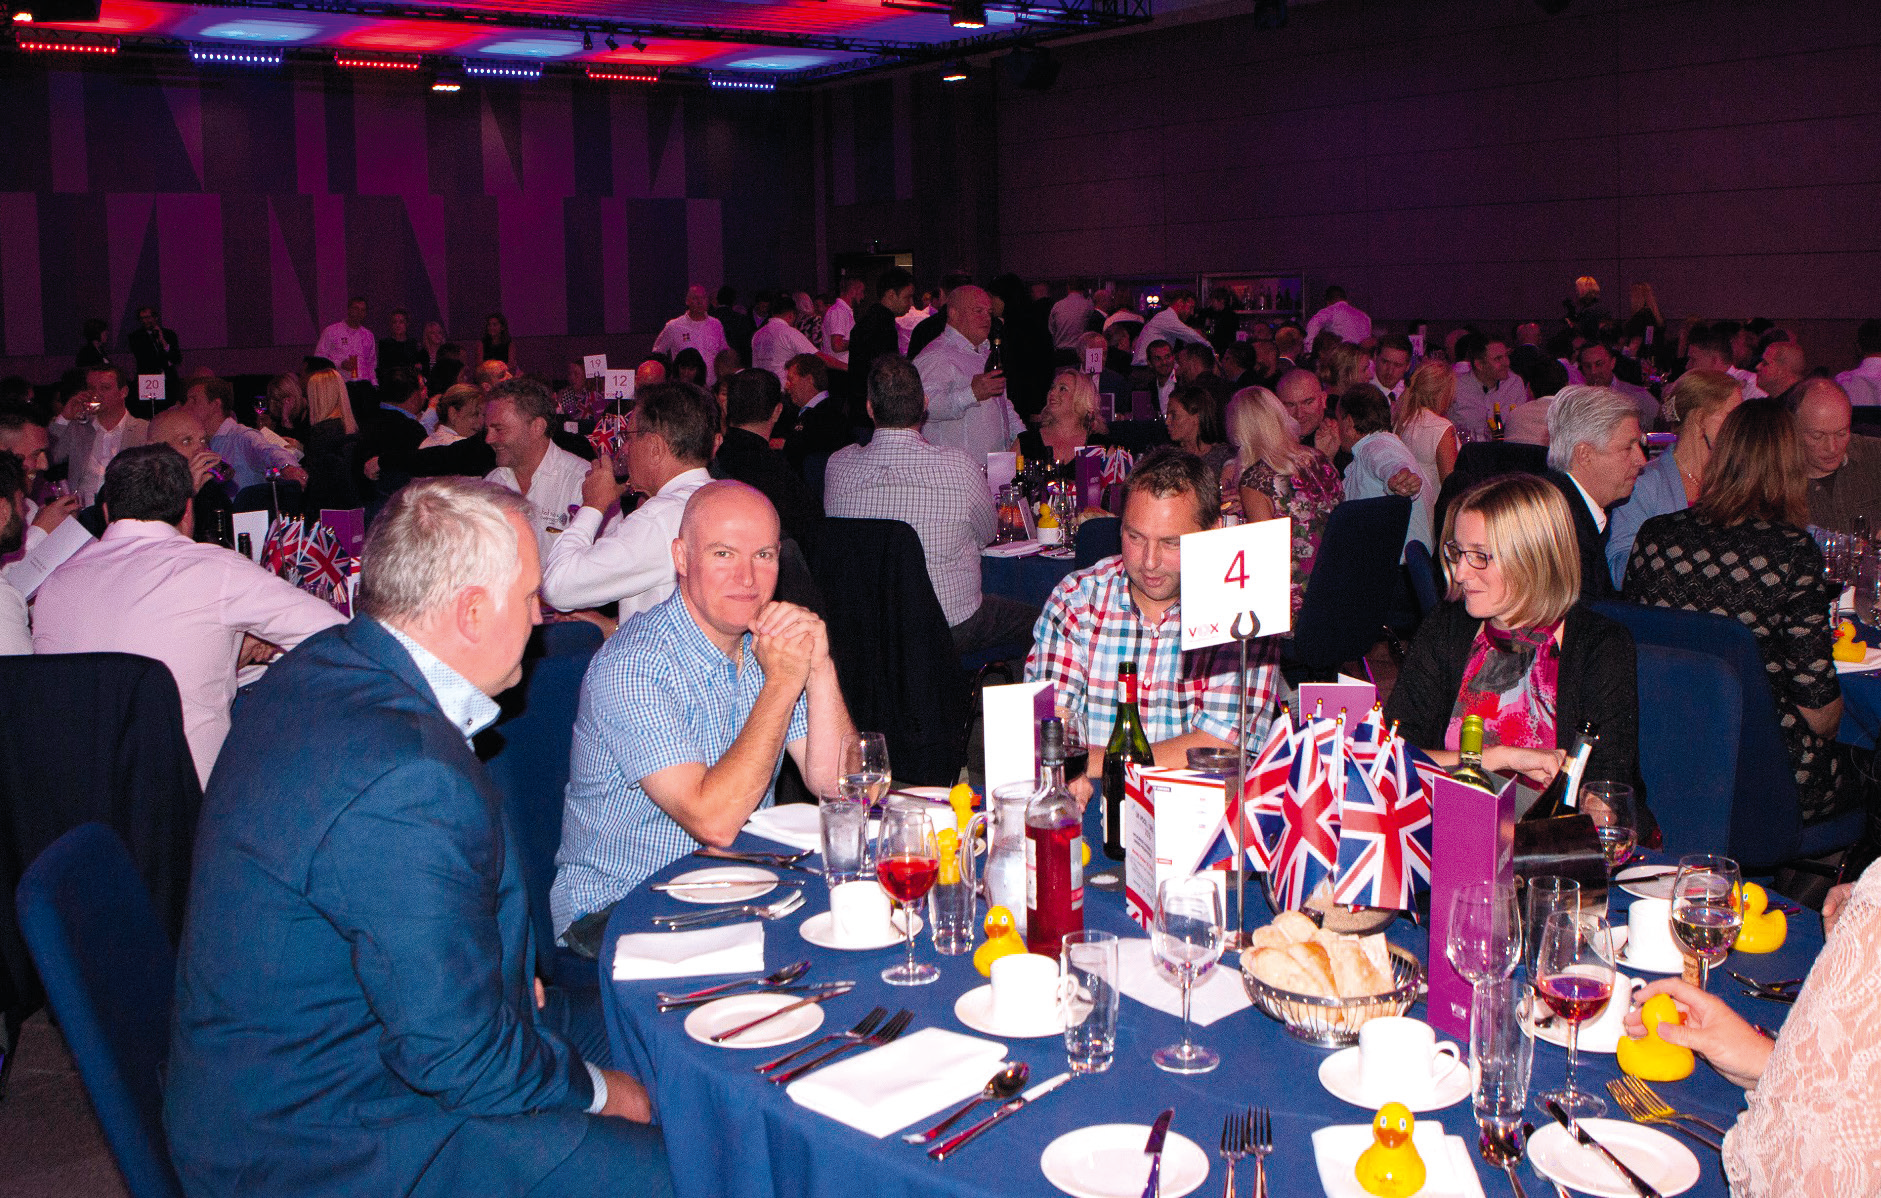 The UK swimming pool and spa sectors celebrate their biggest night of the year, every year at the UK Pool & Spa Awards.